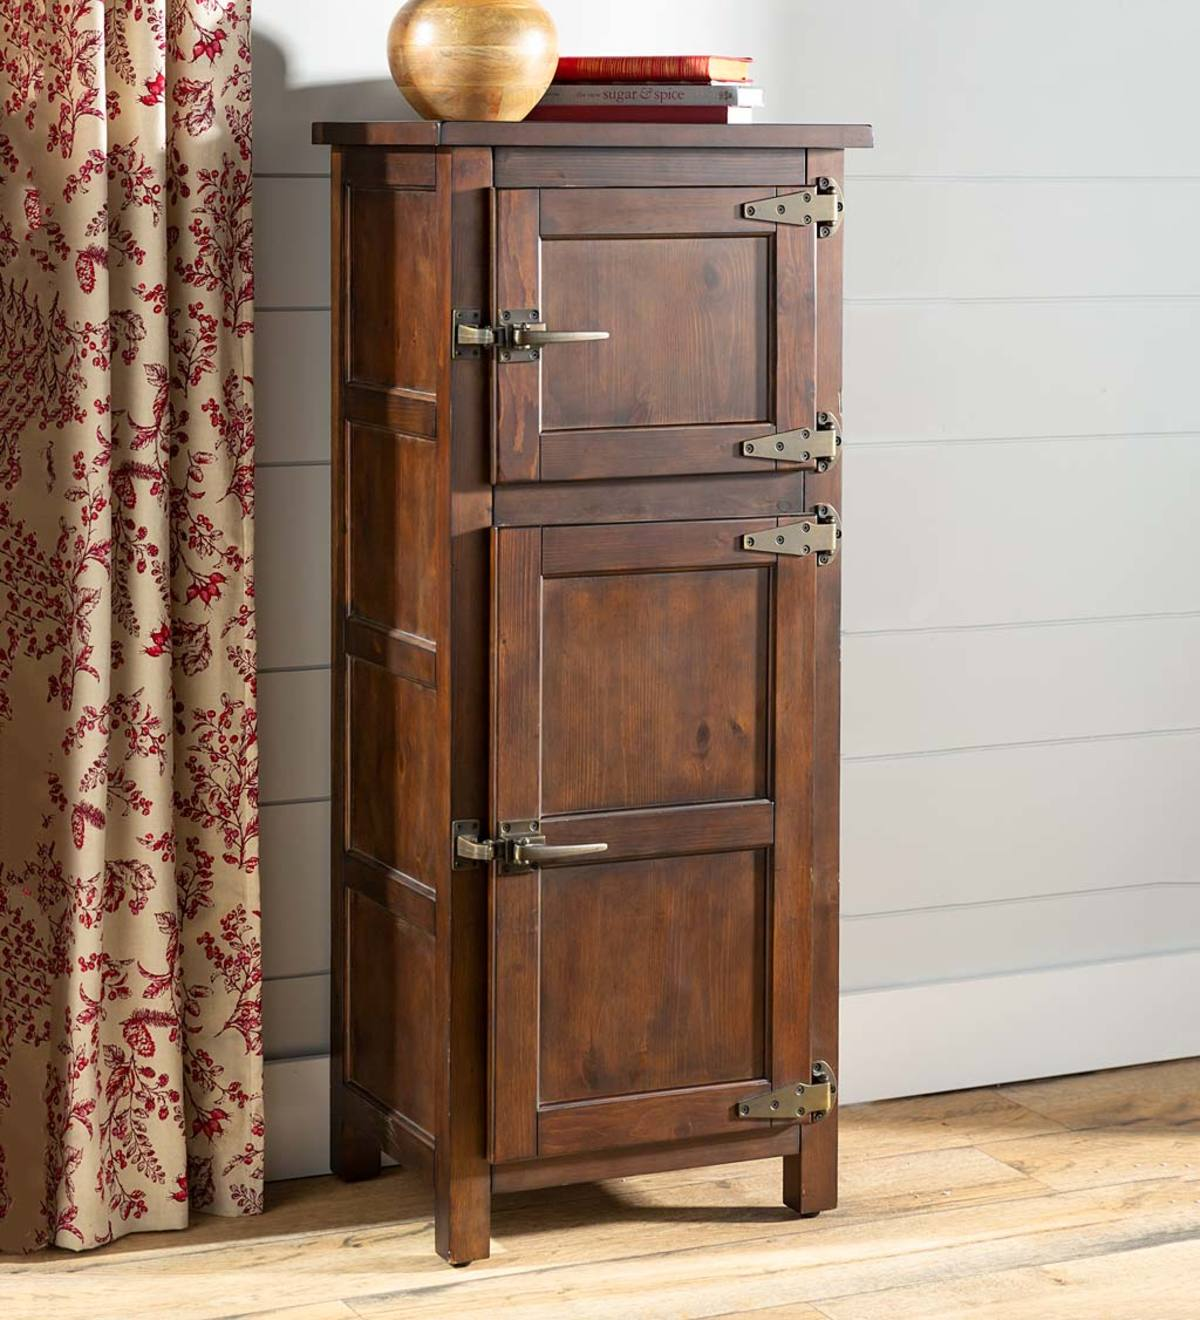 Portland Ice Box Wood Jelly Cabinet with Replica Hardware